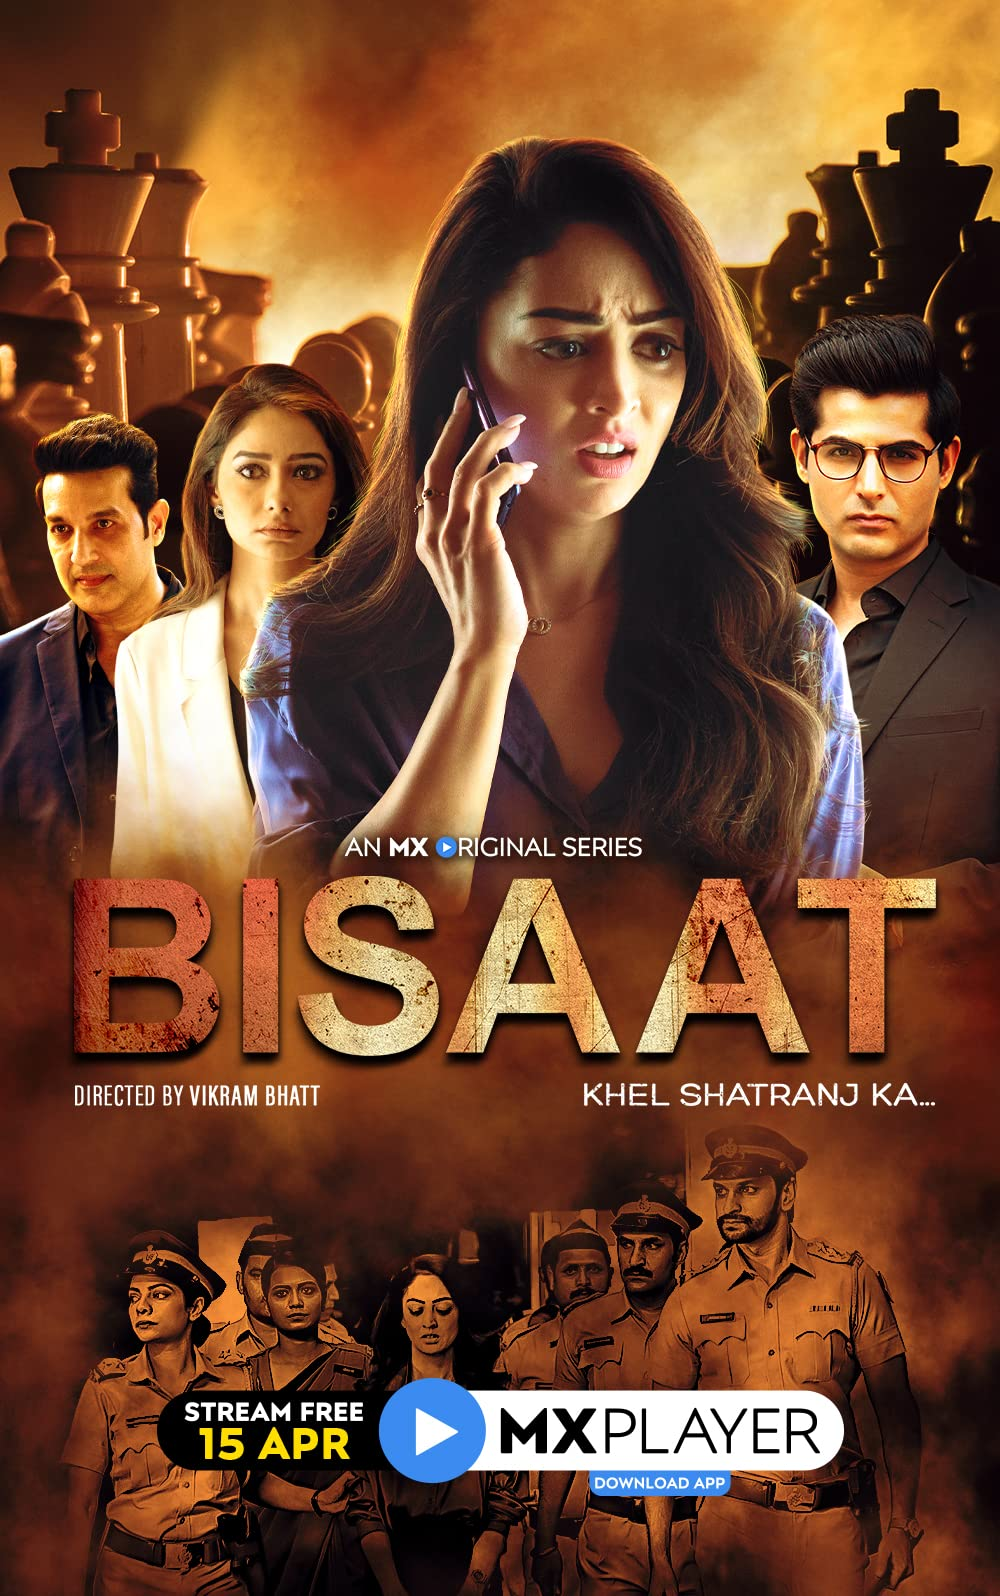 Bisaat: Khel Shatranj Ka 2021 S01 Hindi MX Original Complete Web Series 1080p HDRip 3.3GB x264 AAC